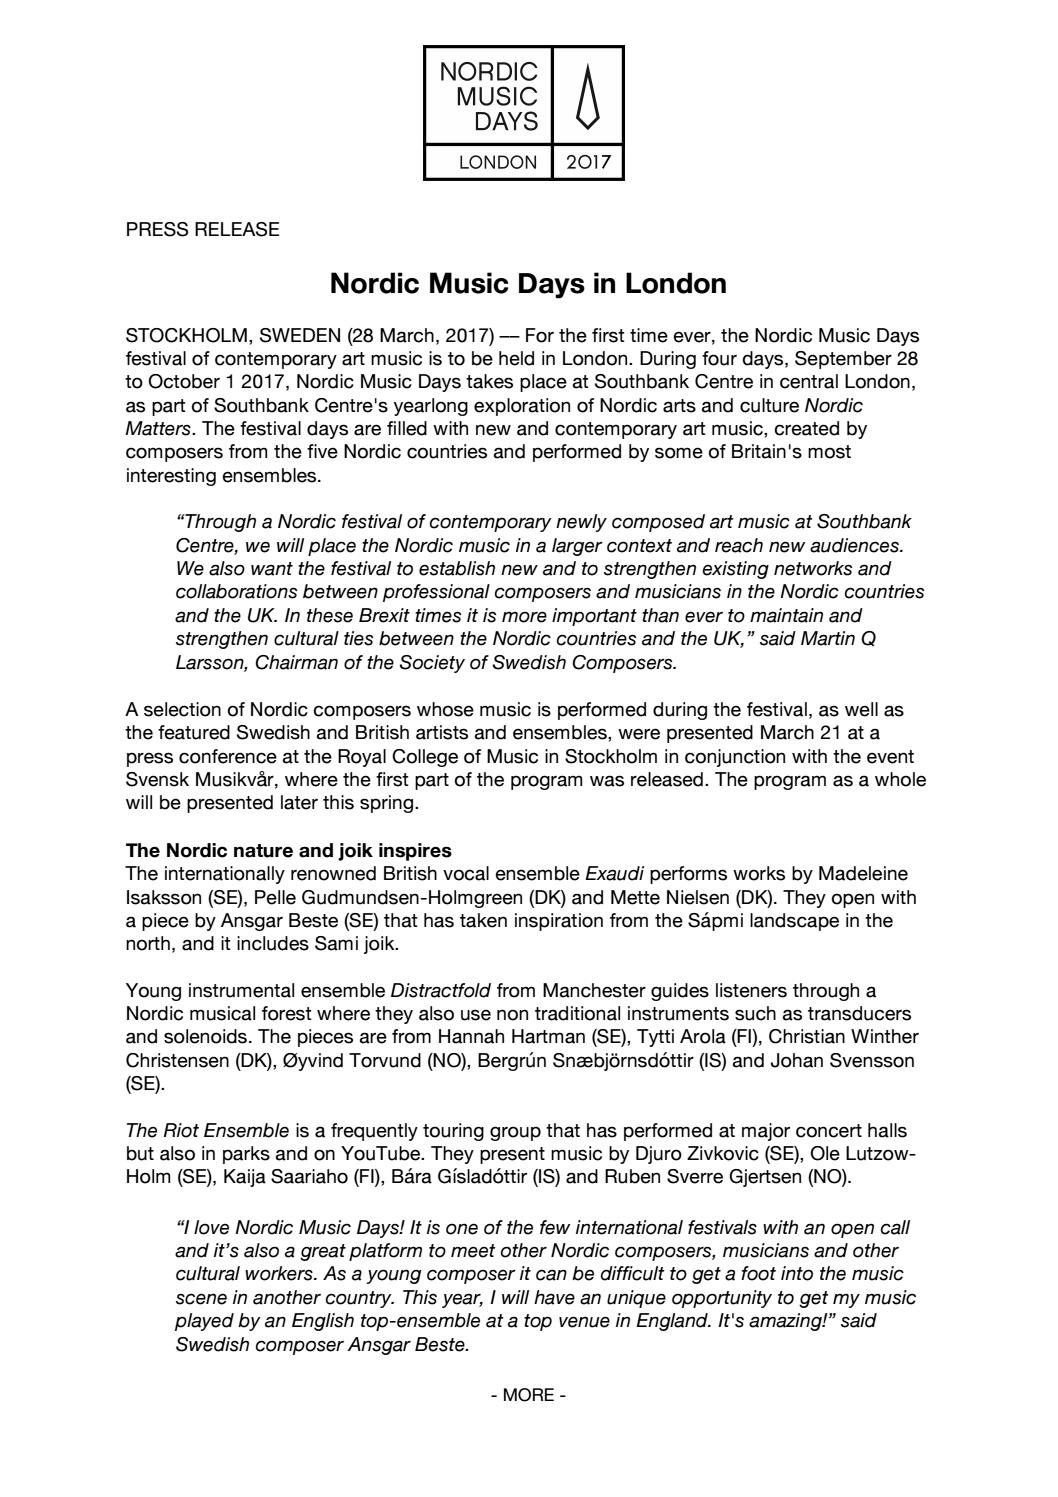 Press release nmd 28 march 2017 en by Nordic Music Days 2017 - issuu